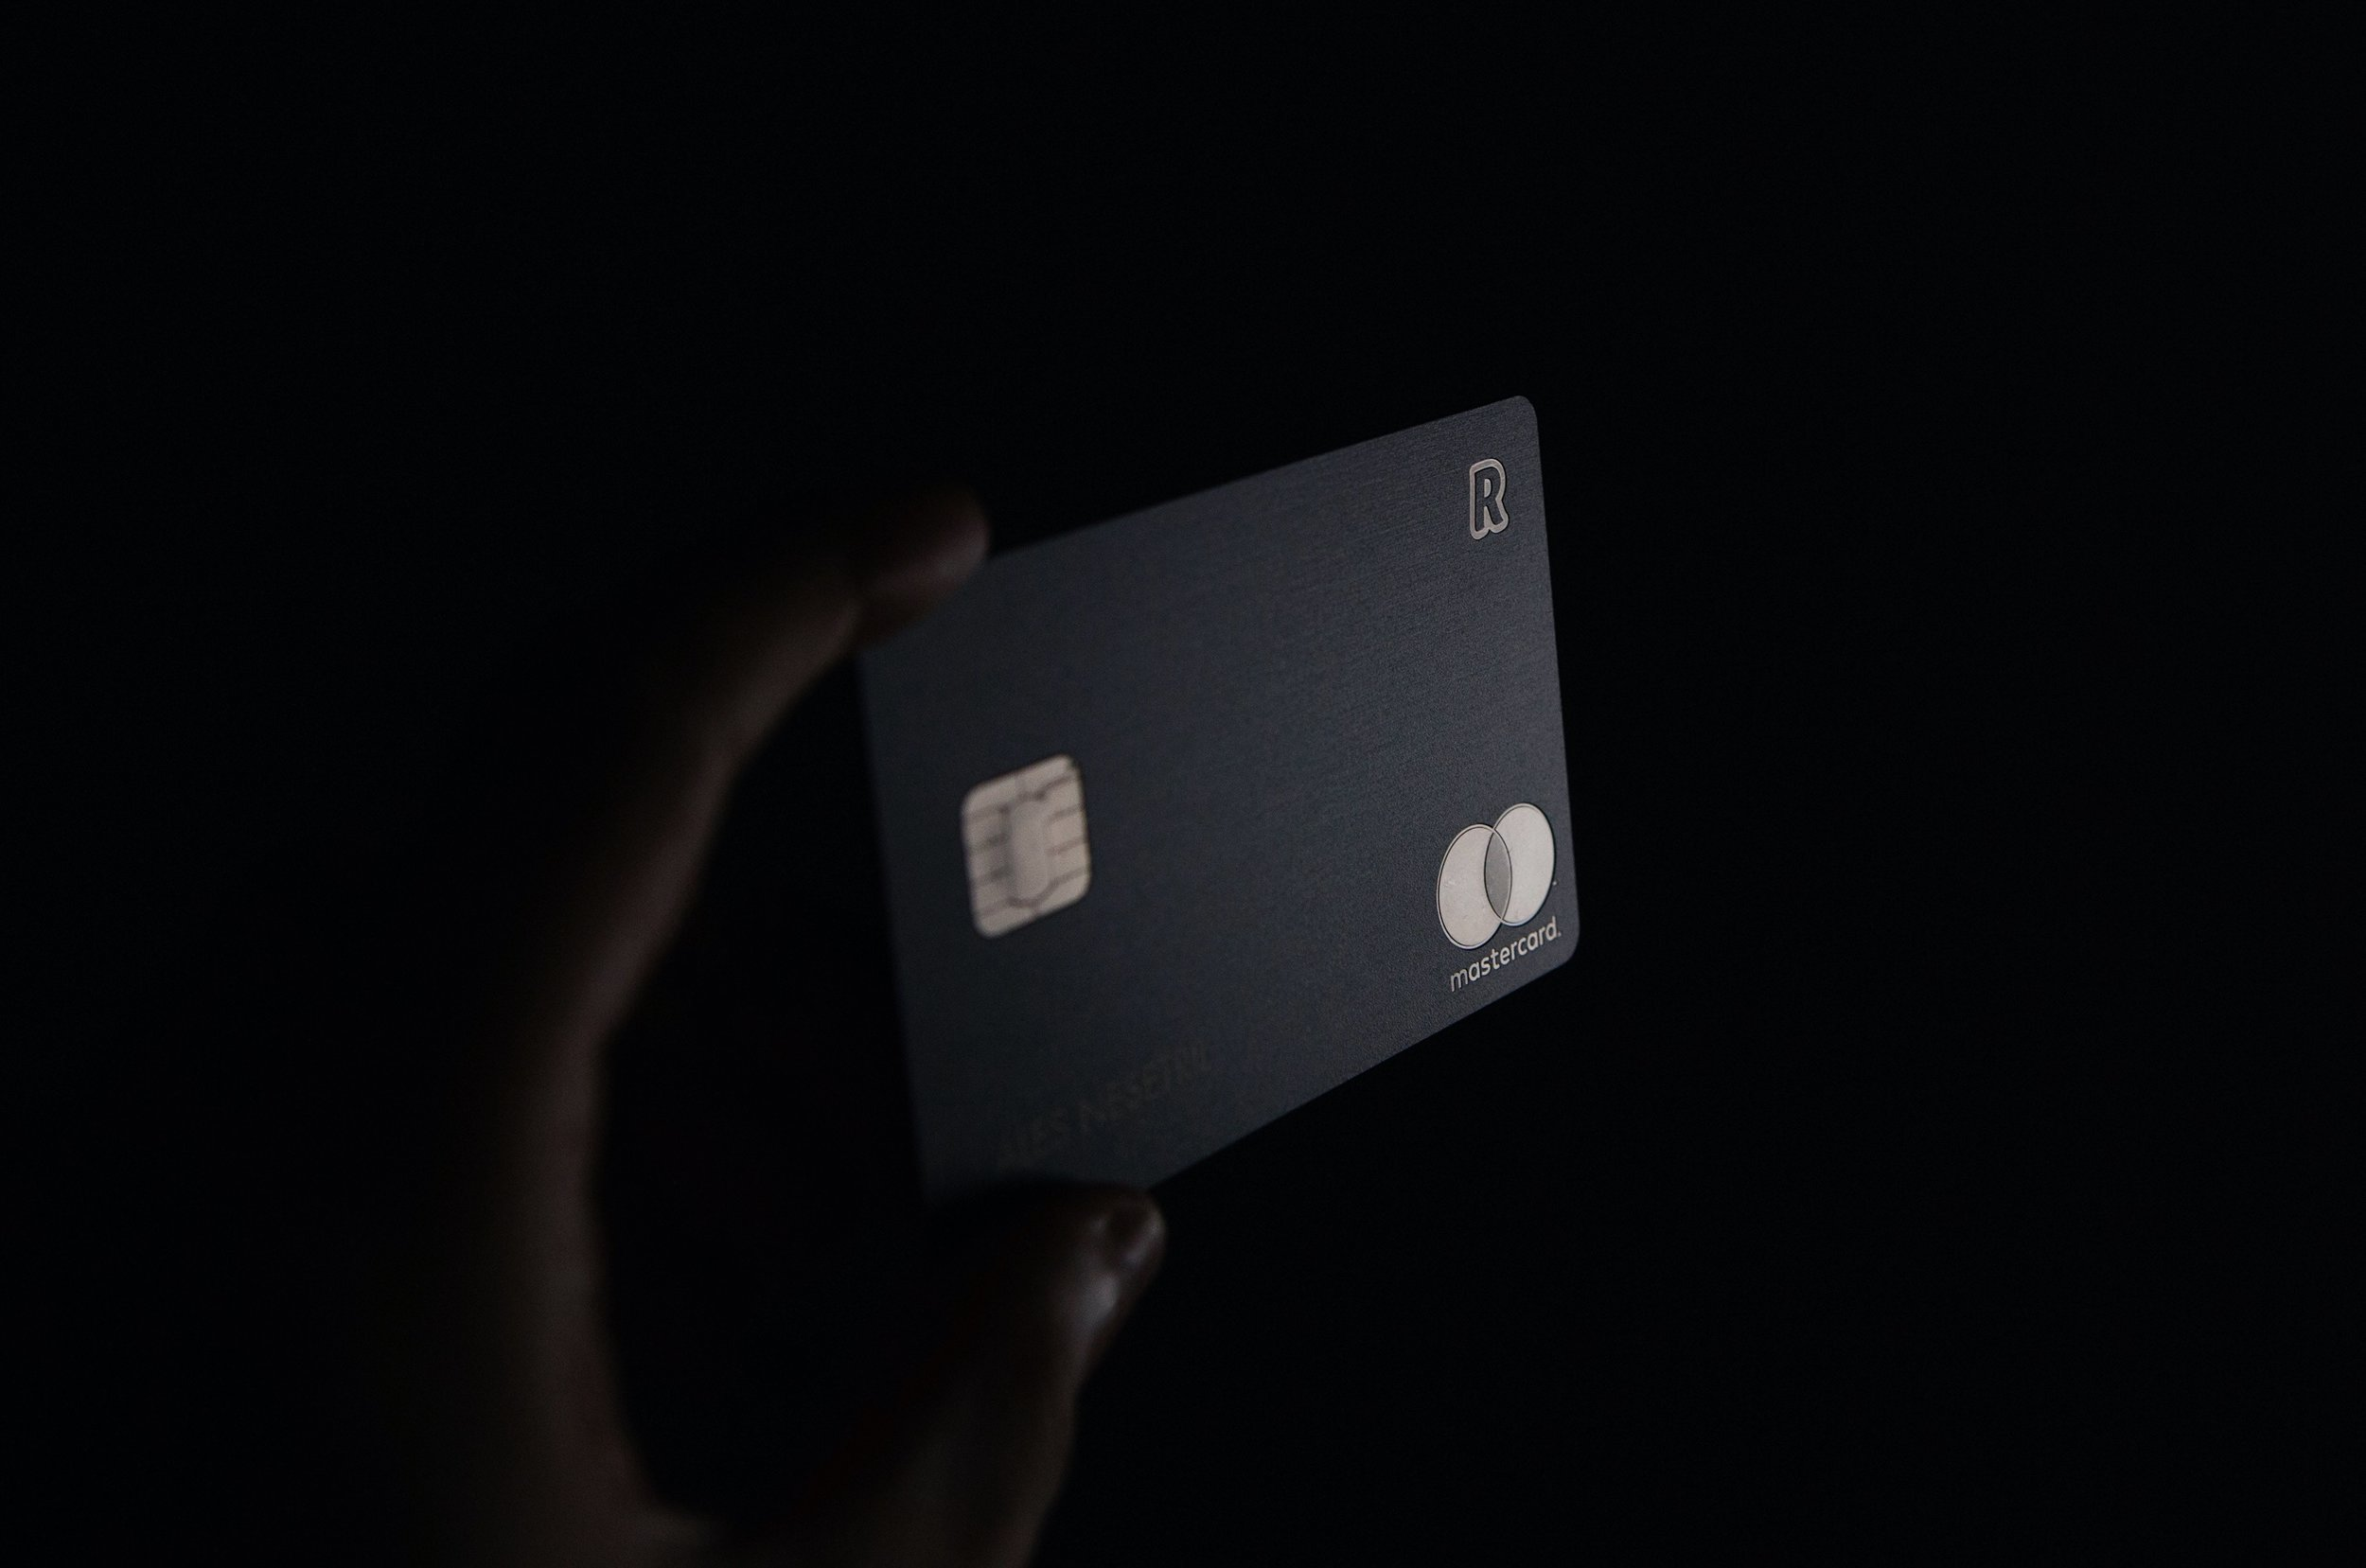 Taking card payments - It's so easy to acquire a card reader these days!